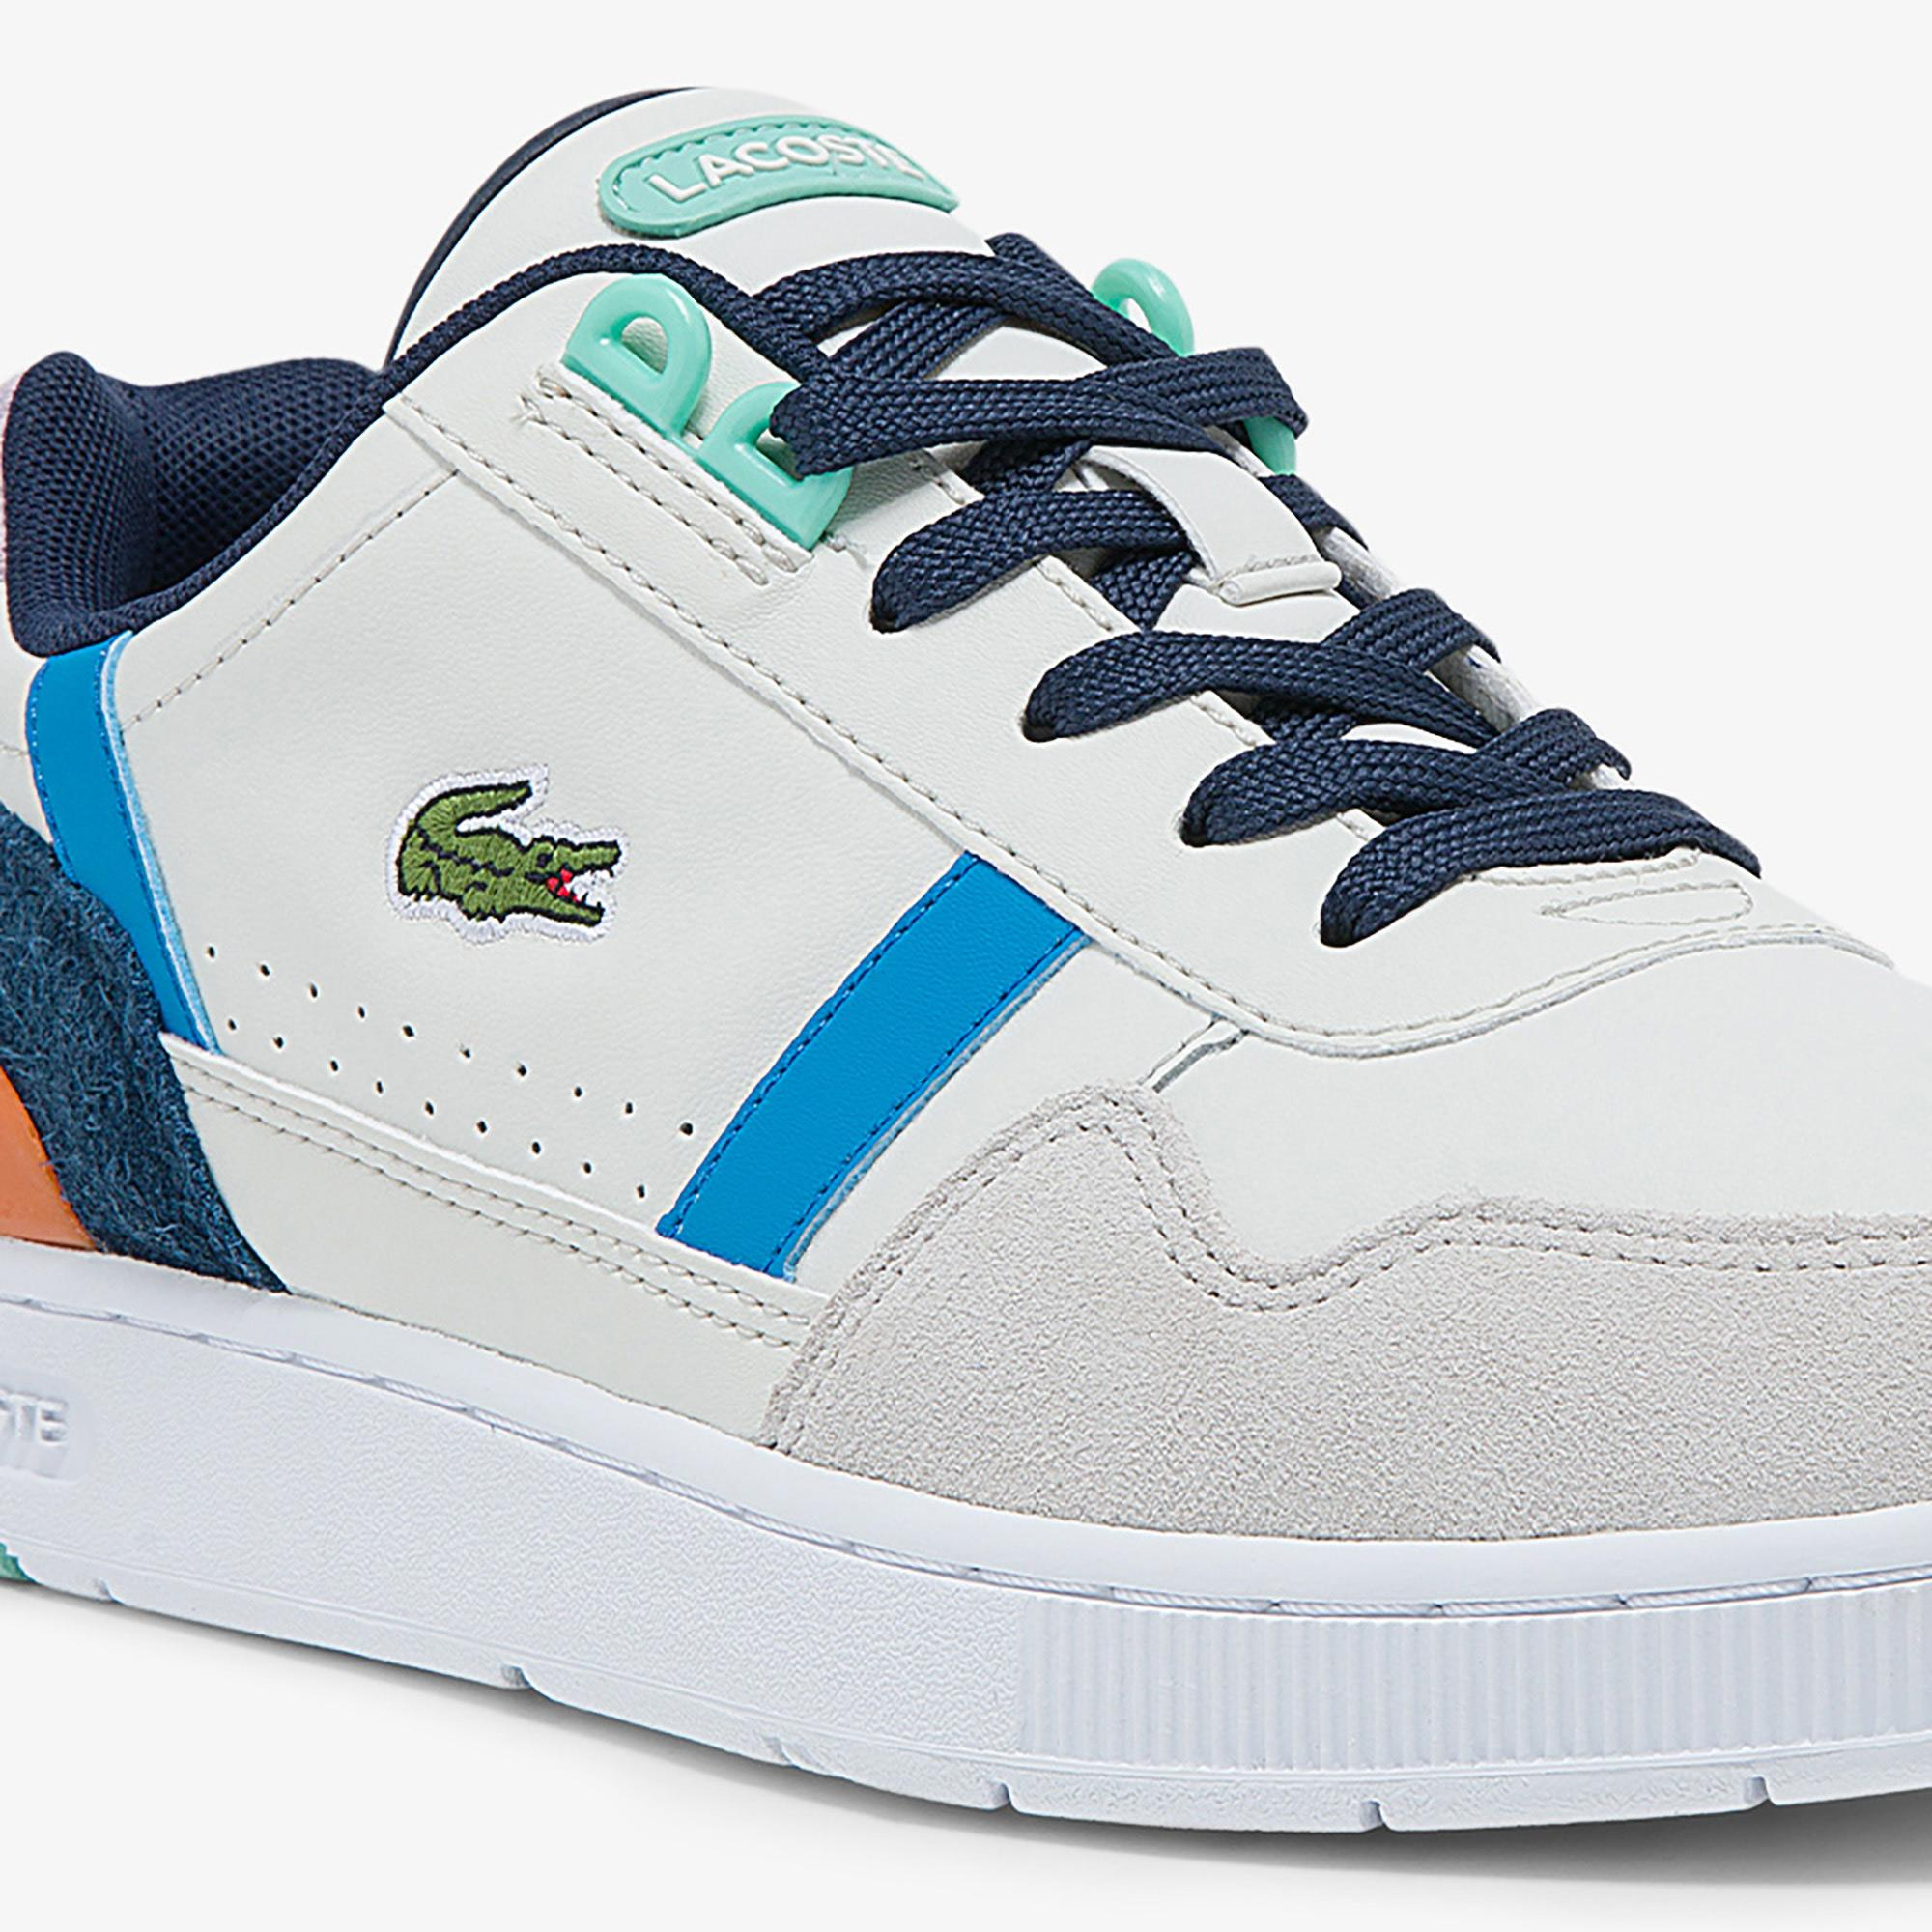 Lacoste Women's T-Clip Leather and Suede Sneakers